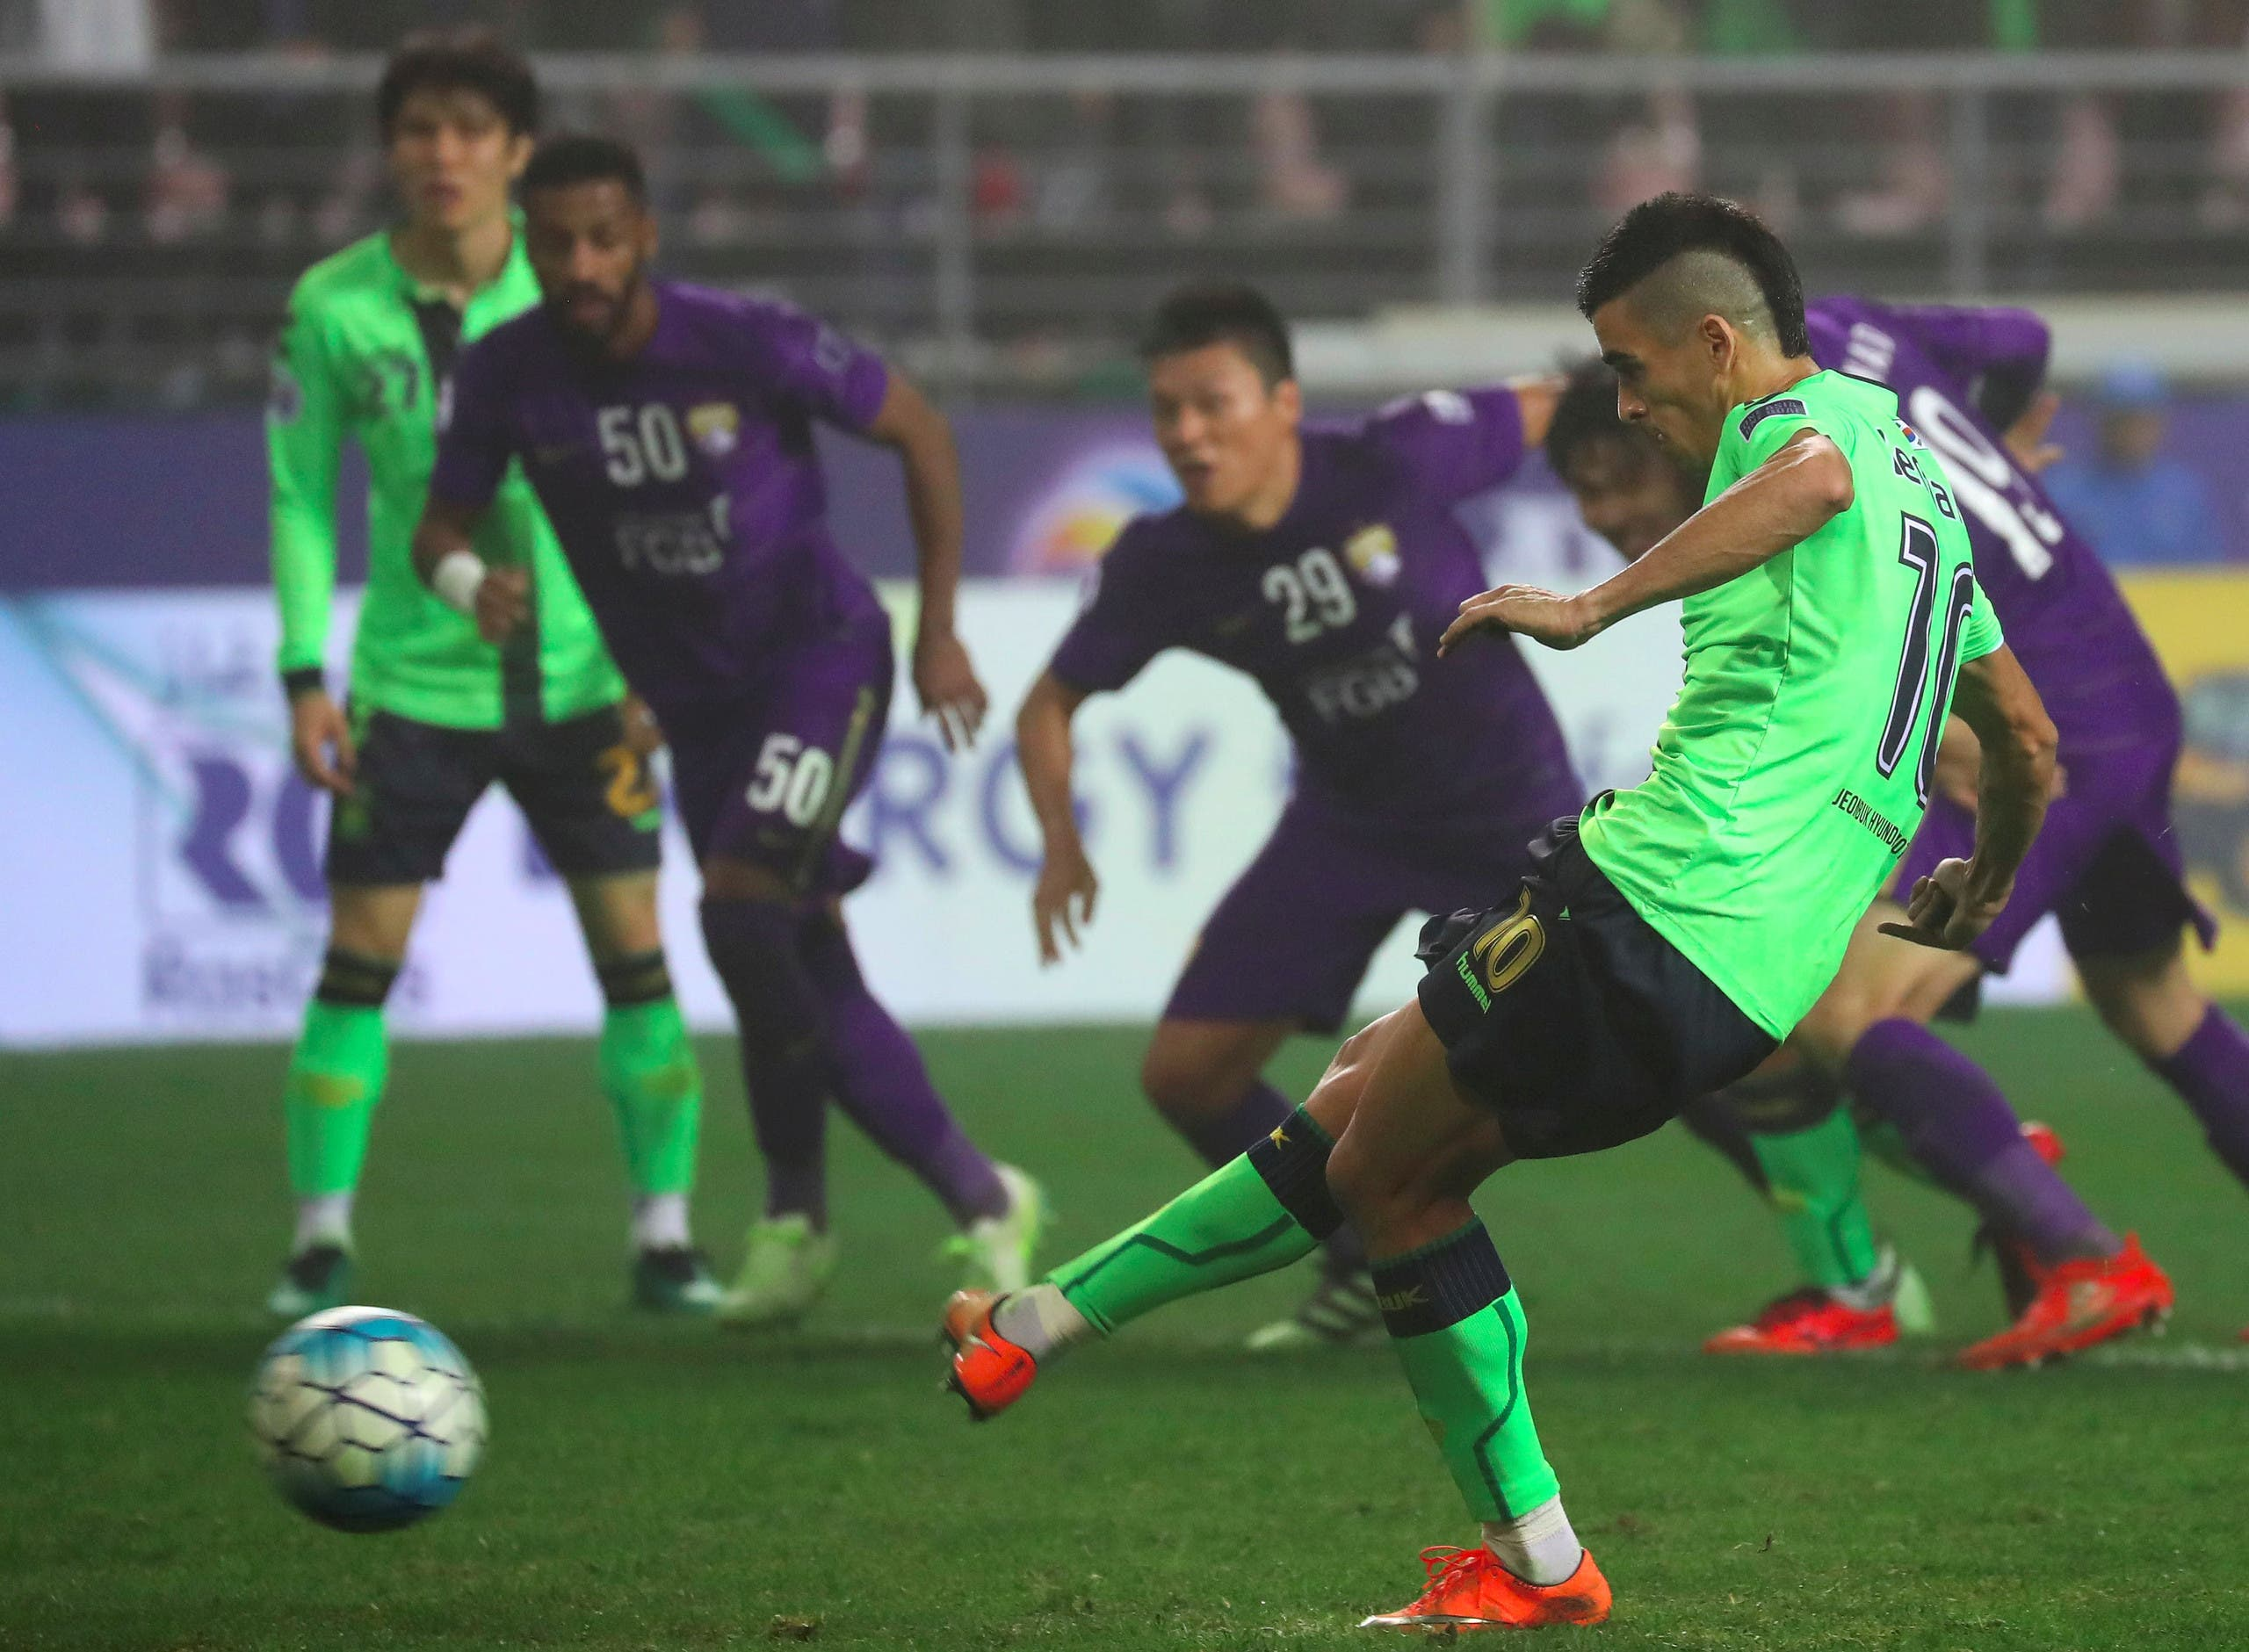 Jeonbuk Hyundai Motors' Leonardo Rodrigues Pereira (R) takes a penalty kick against Al Ain during the AFC Champions League Final 1st Leg football match in Jeonju on November 19, 2016. Brazilian forward Leonardo hit a blistering second-half double as Jeonbuk Hyundai Motors came from behind to beat Al Ain 2-1 and grab the initiative in the two-legged AFC Champions League final on November 19. YONHAP / AFP